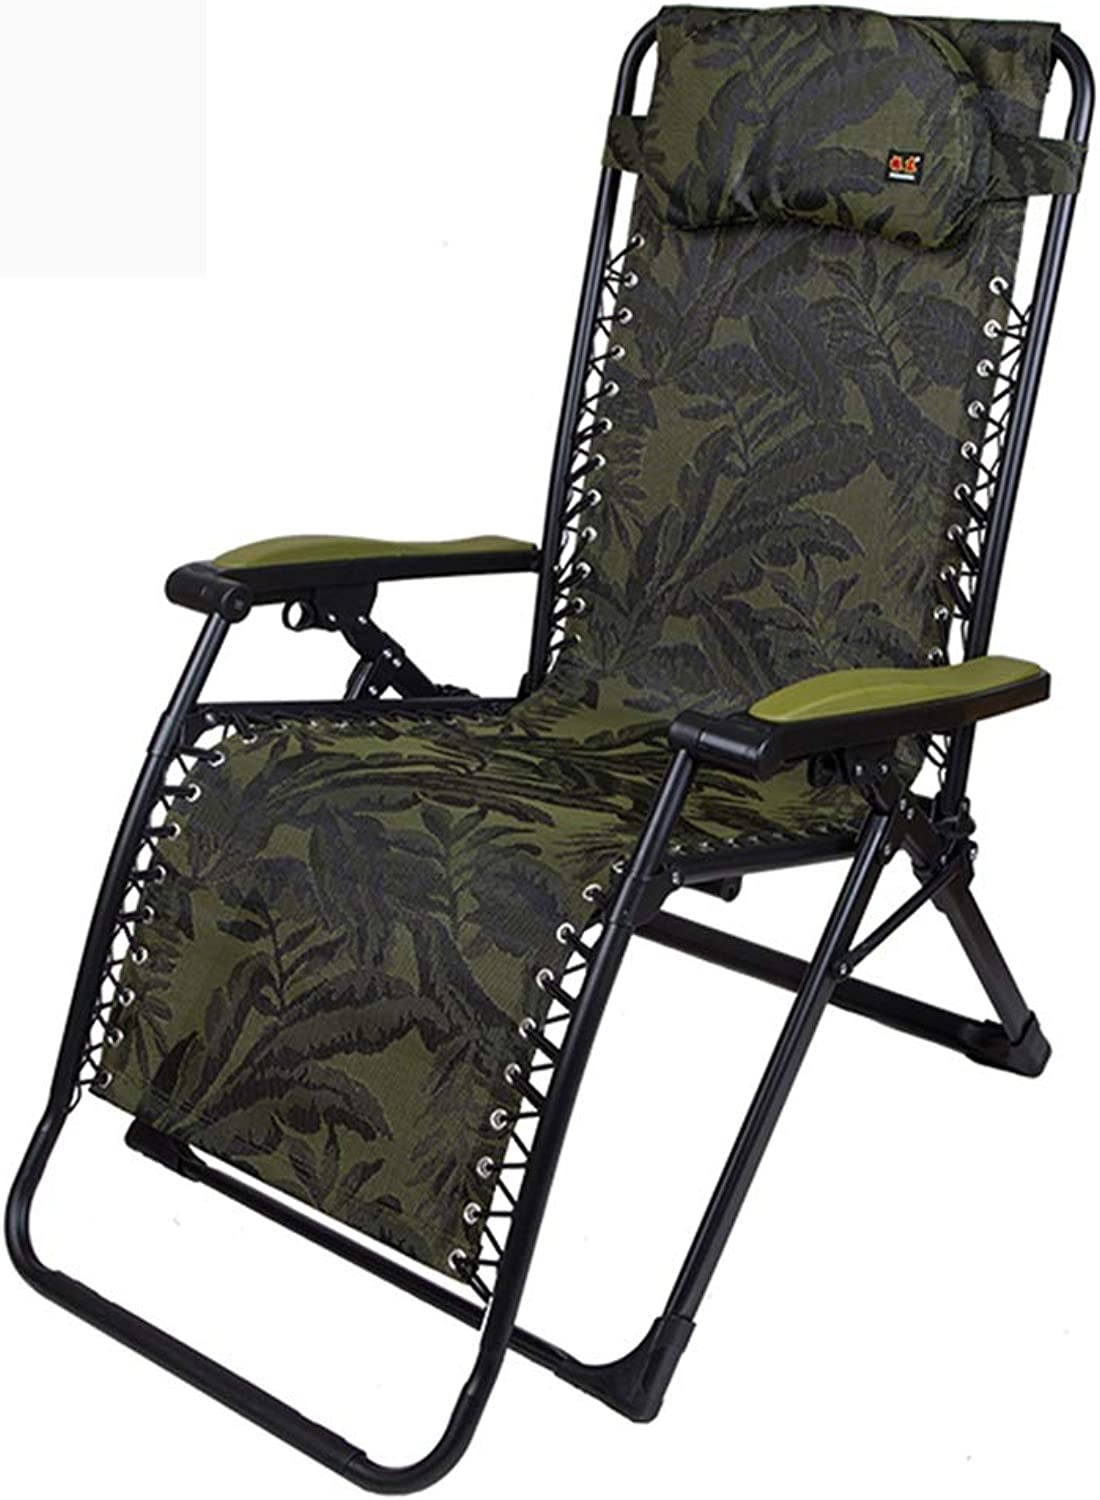 Recliners Lounge Chair Sun Lounger Garden Folding Chair Home Balcony with Chair Office Lunch Chair Outdoor Portable Camp Bed Can Bear 250 Kg (color   Green, Size   69.5  178cm)